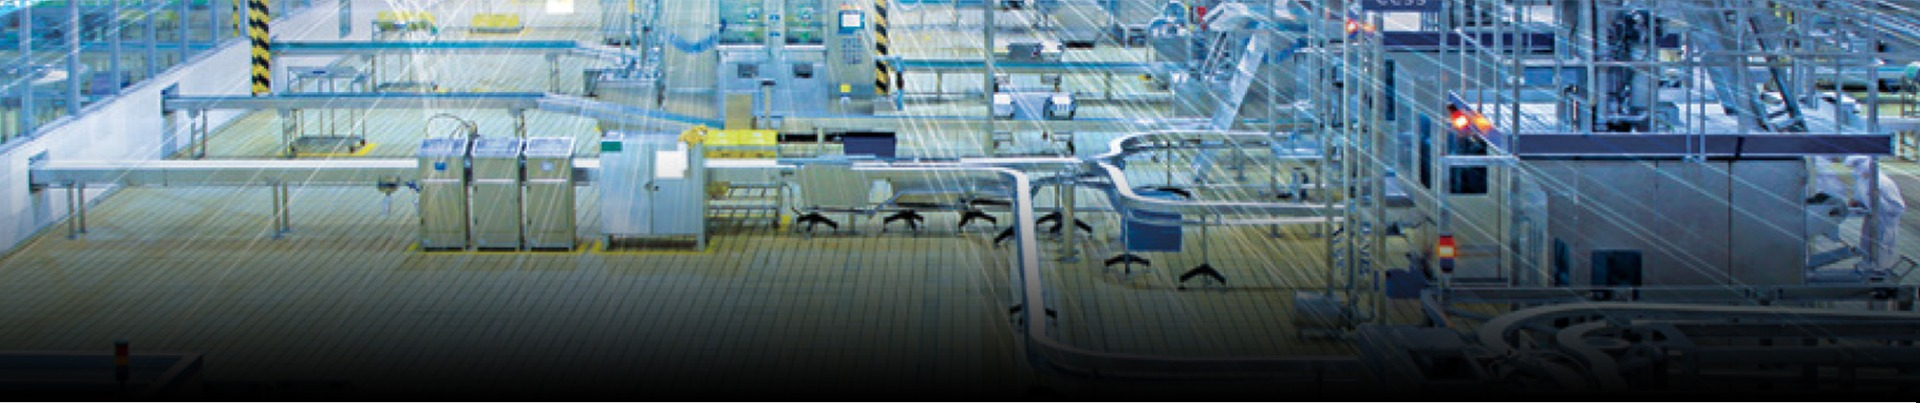 Solutions for the Food Industry